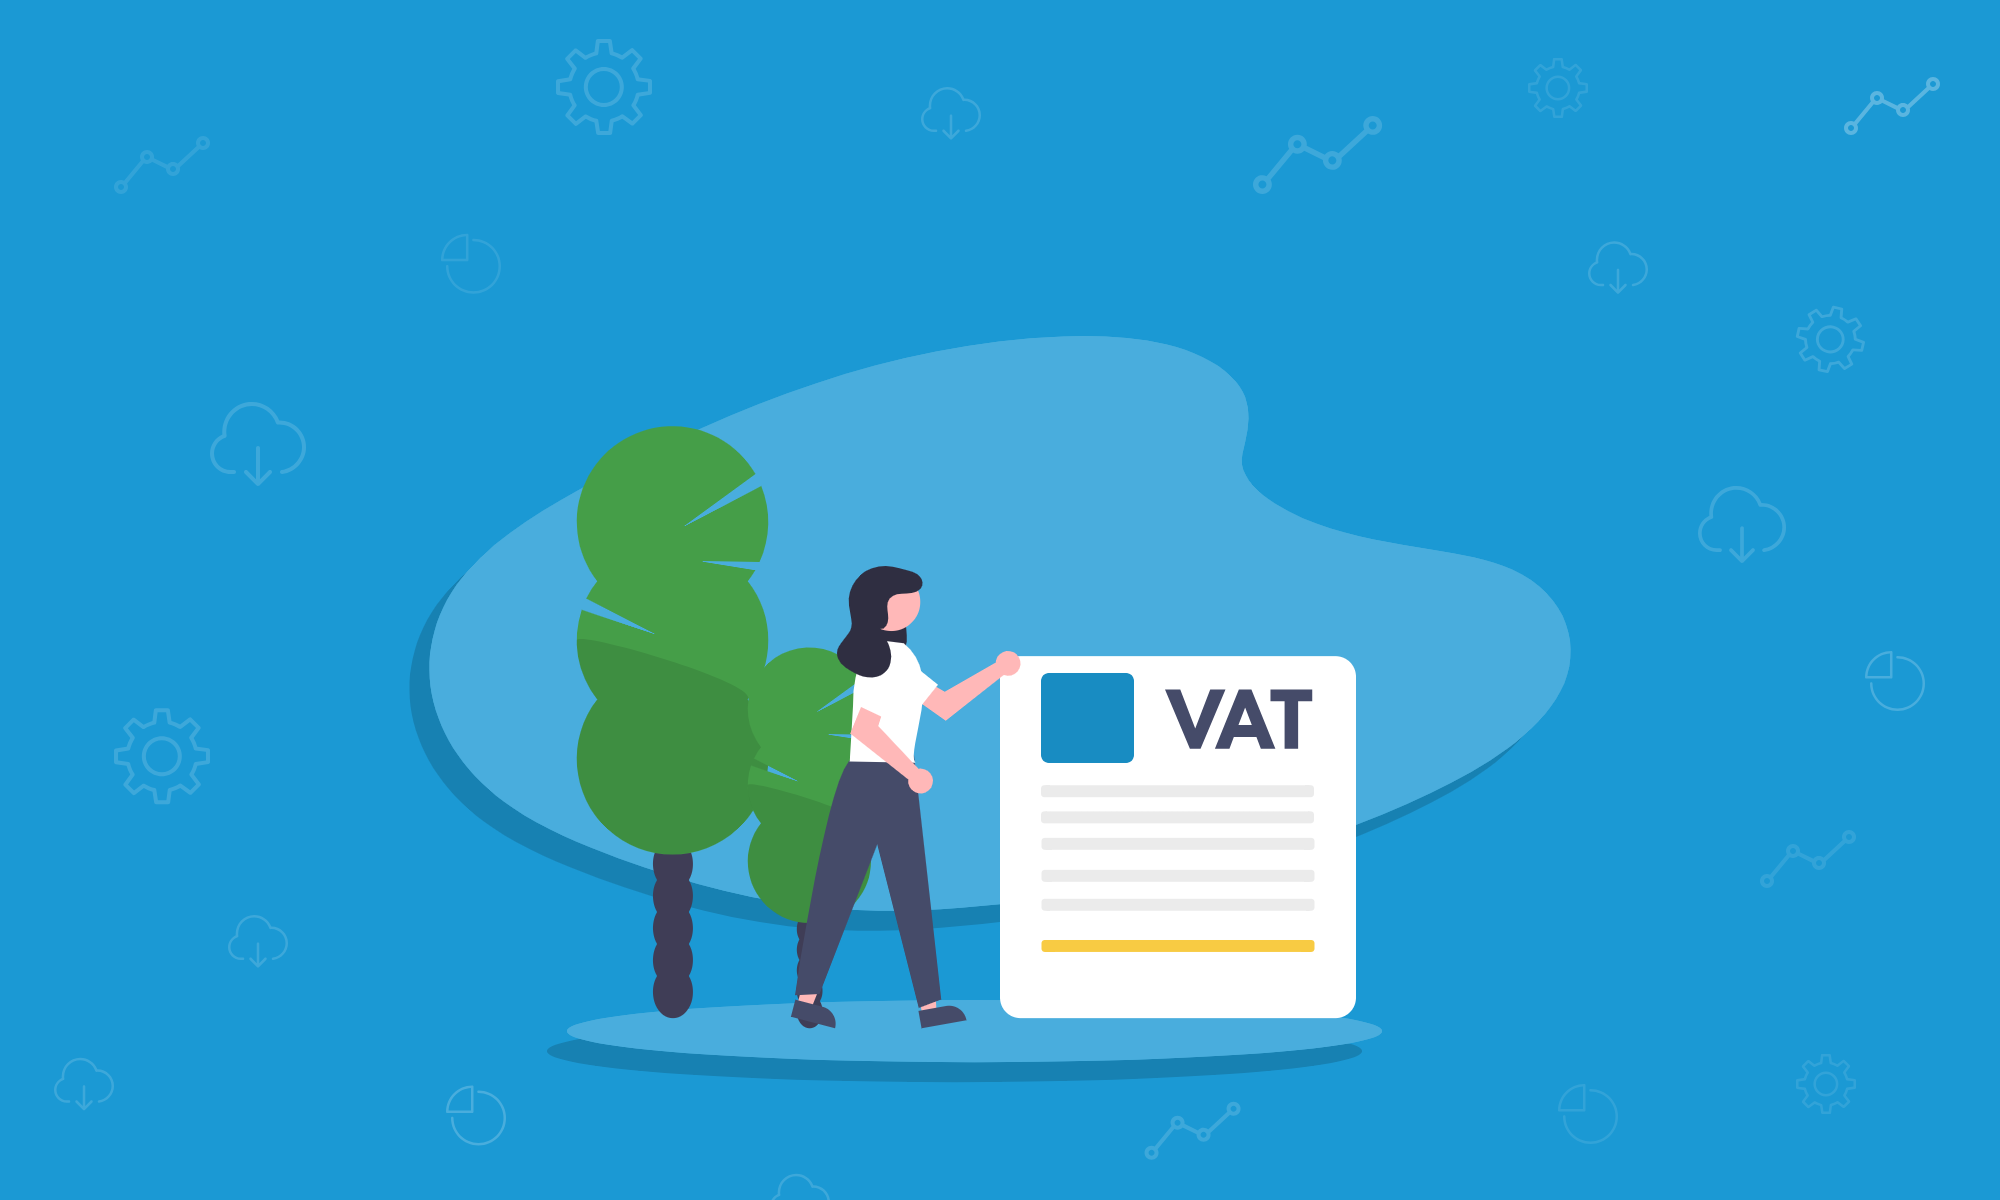 What's the Difference Between 0 VAT and VAT Exemption